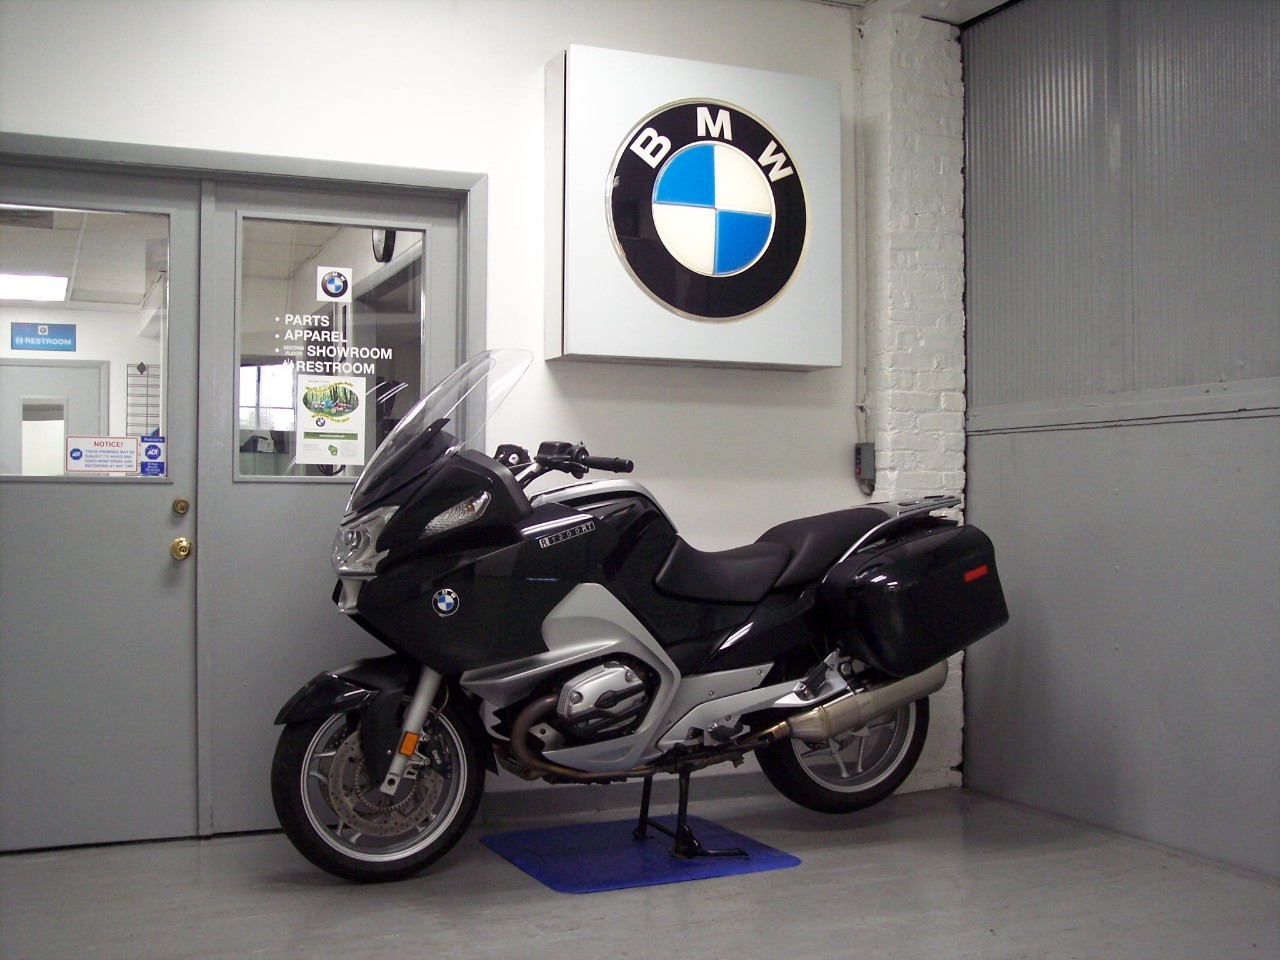 Bmw R 1200 Gs Adventure Triple Black Low Suspension Premium For Sale 2005 R1200gs Engine Diagram View 2514 Motorcycles